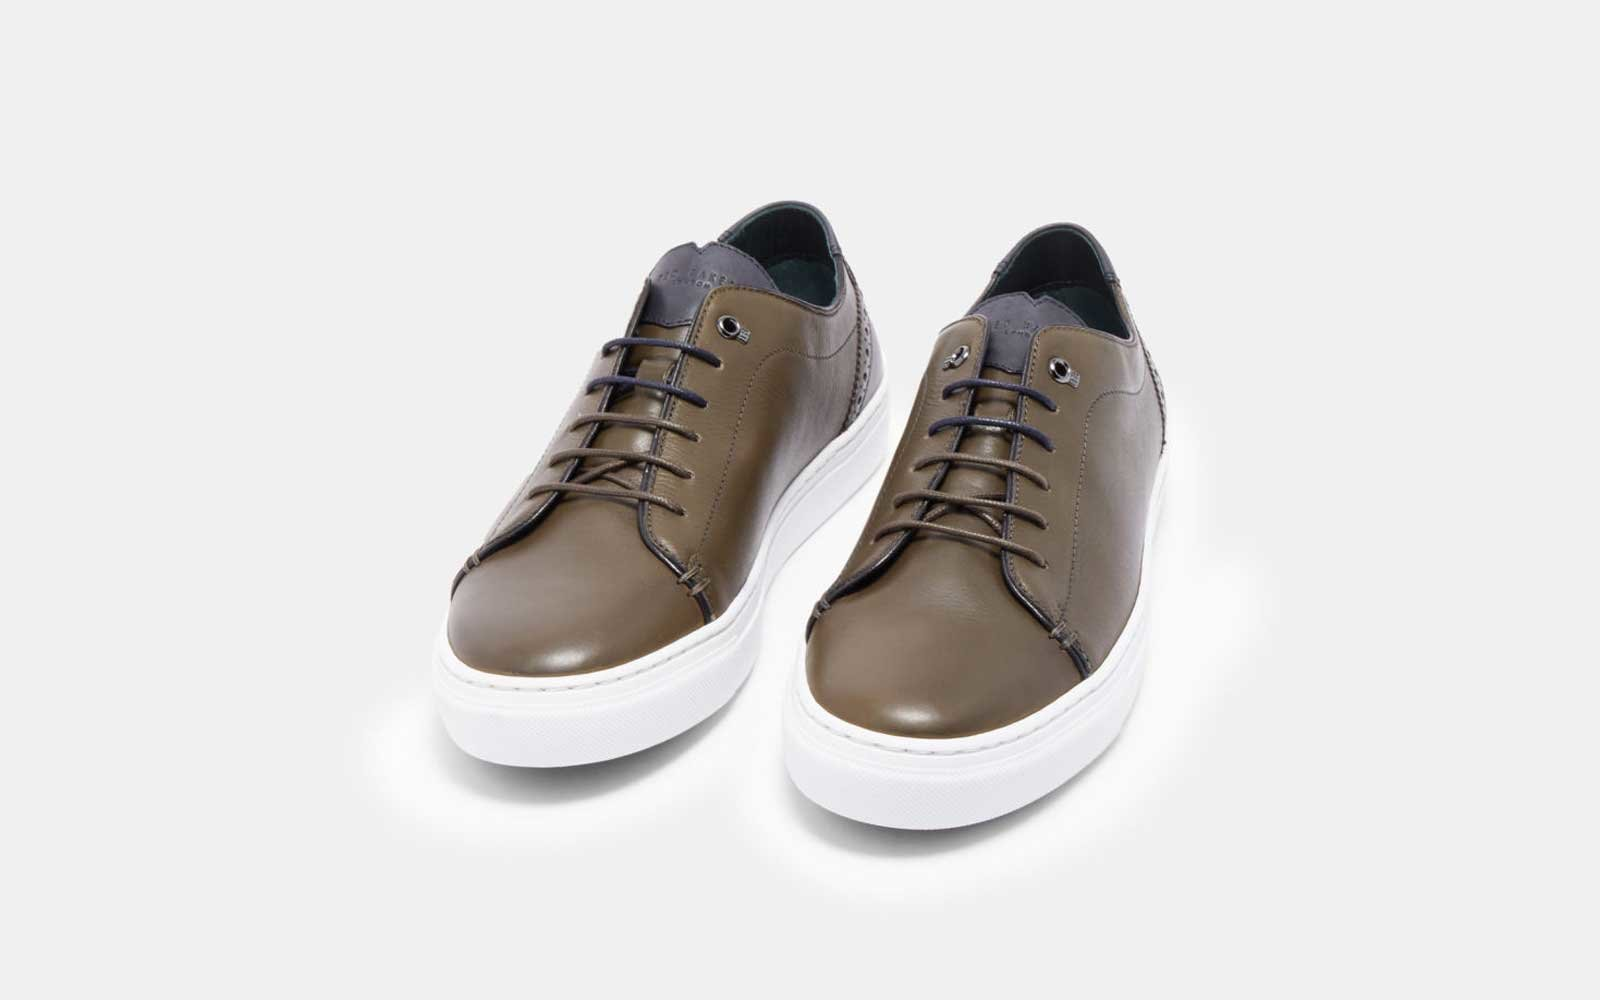 a2ee8296bd9b The Best Men's Dress Sneakers & Tennis Shoes | Travel + Leisure